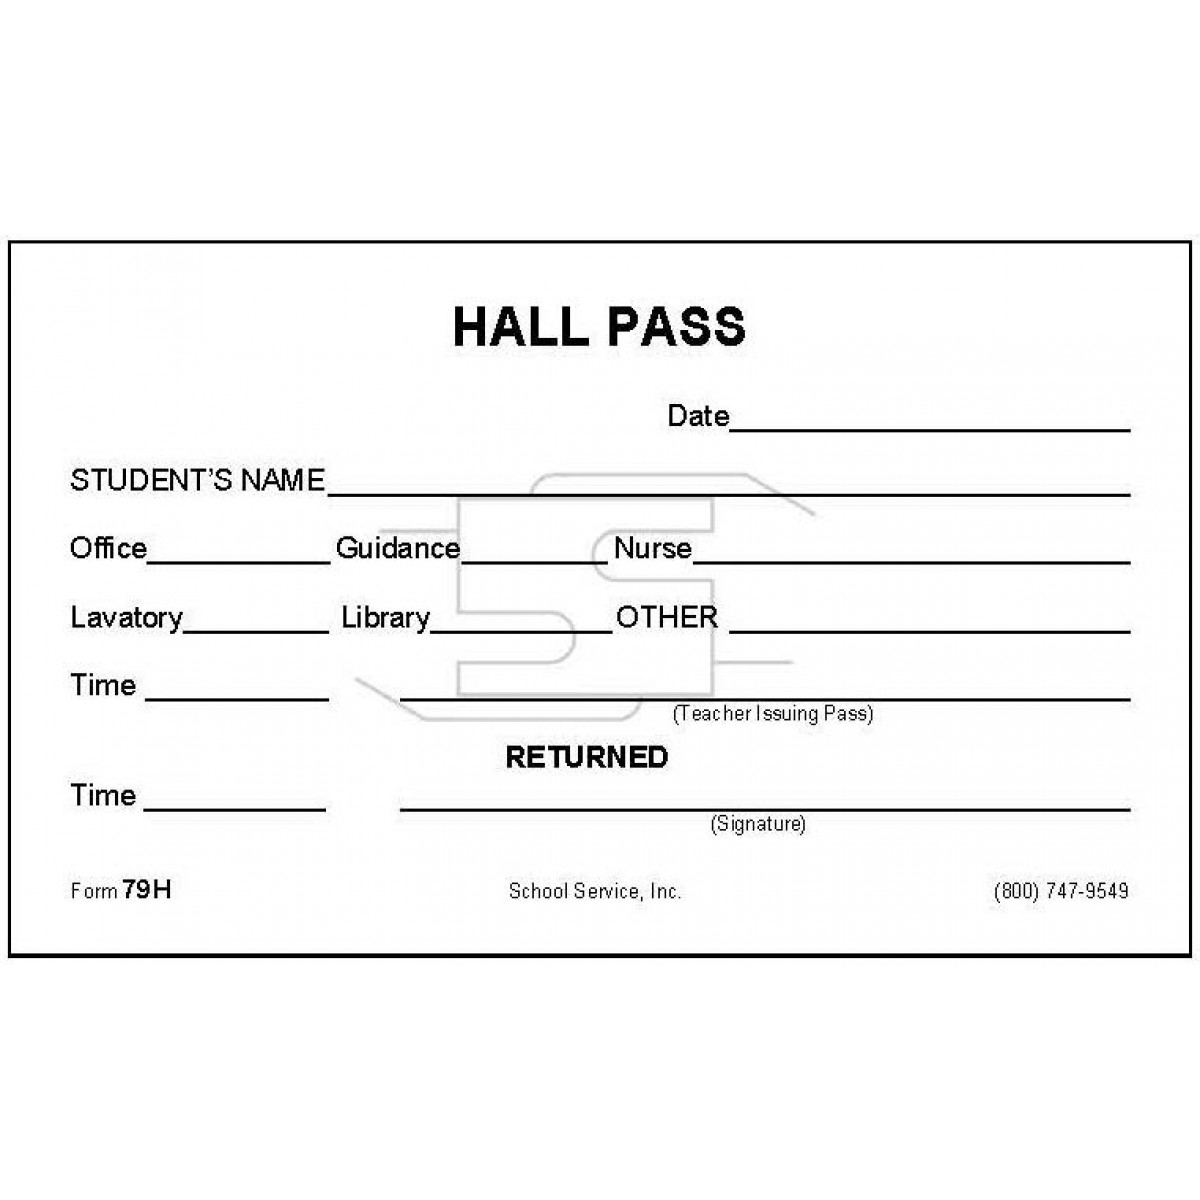 Hall pass school yelomdiffusion 79h hall pass padded forms maxwellsz